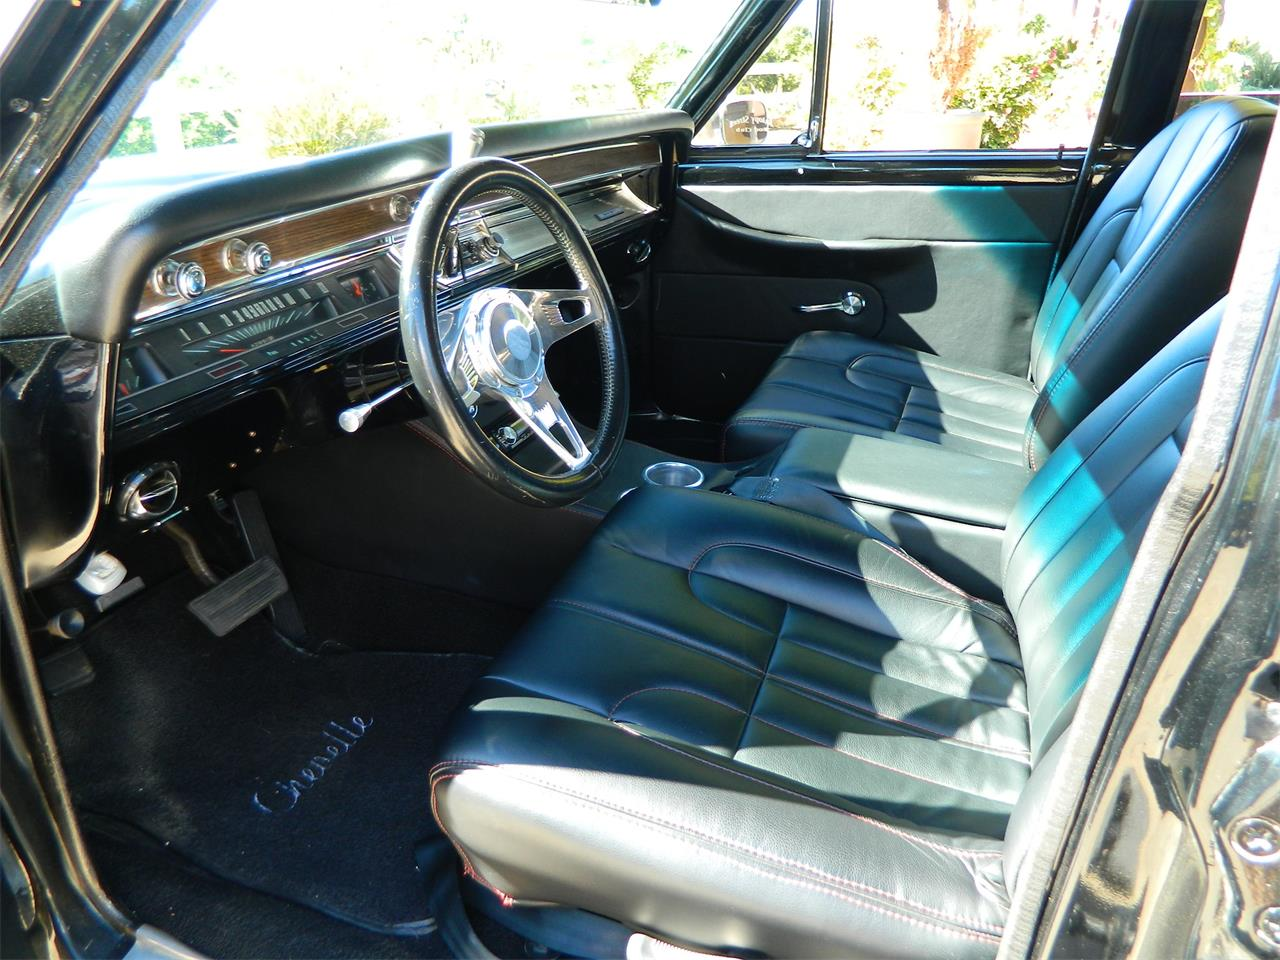 Large Picture of '67 Chevelle located in California - $48,000.00 Offered by Classic Car Marketing, Inc. - PJY1